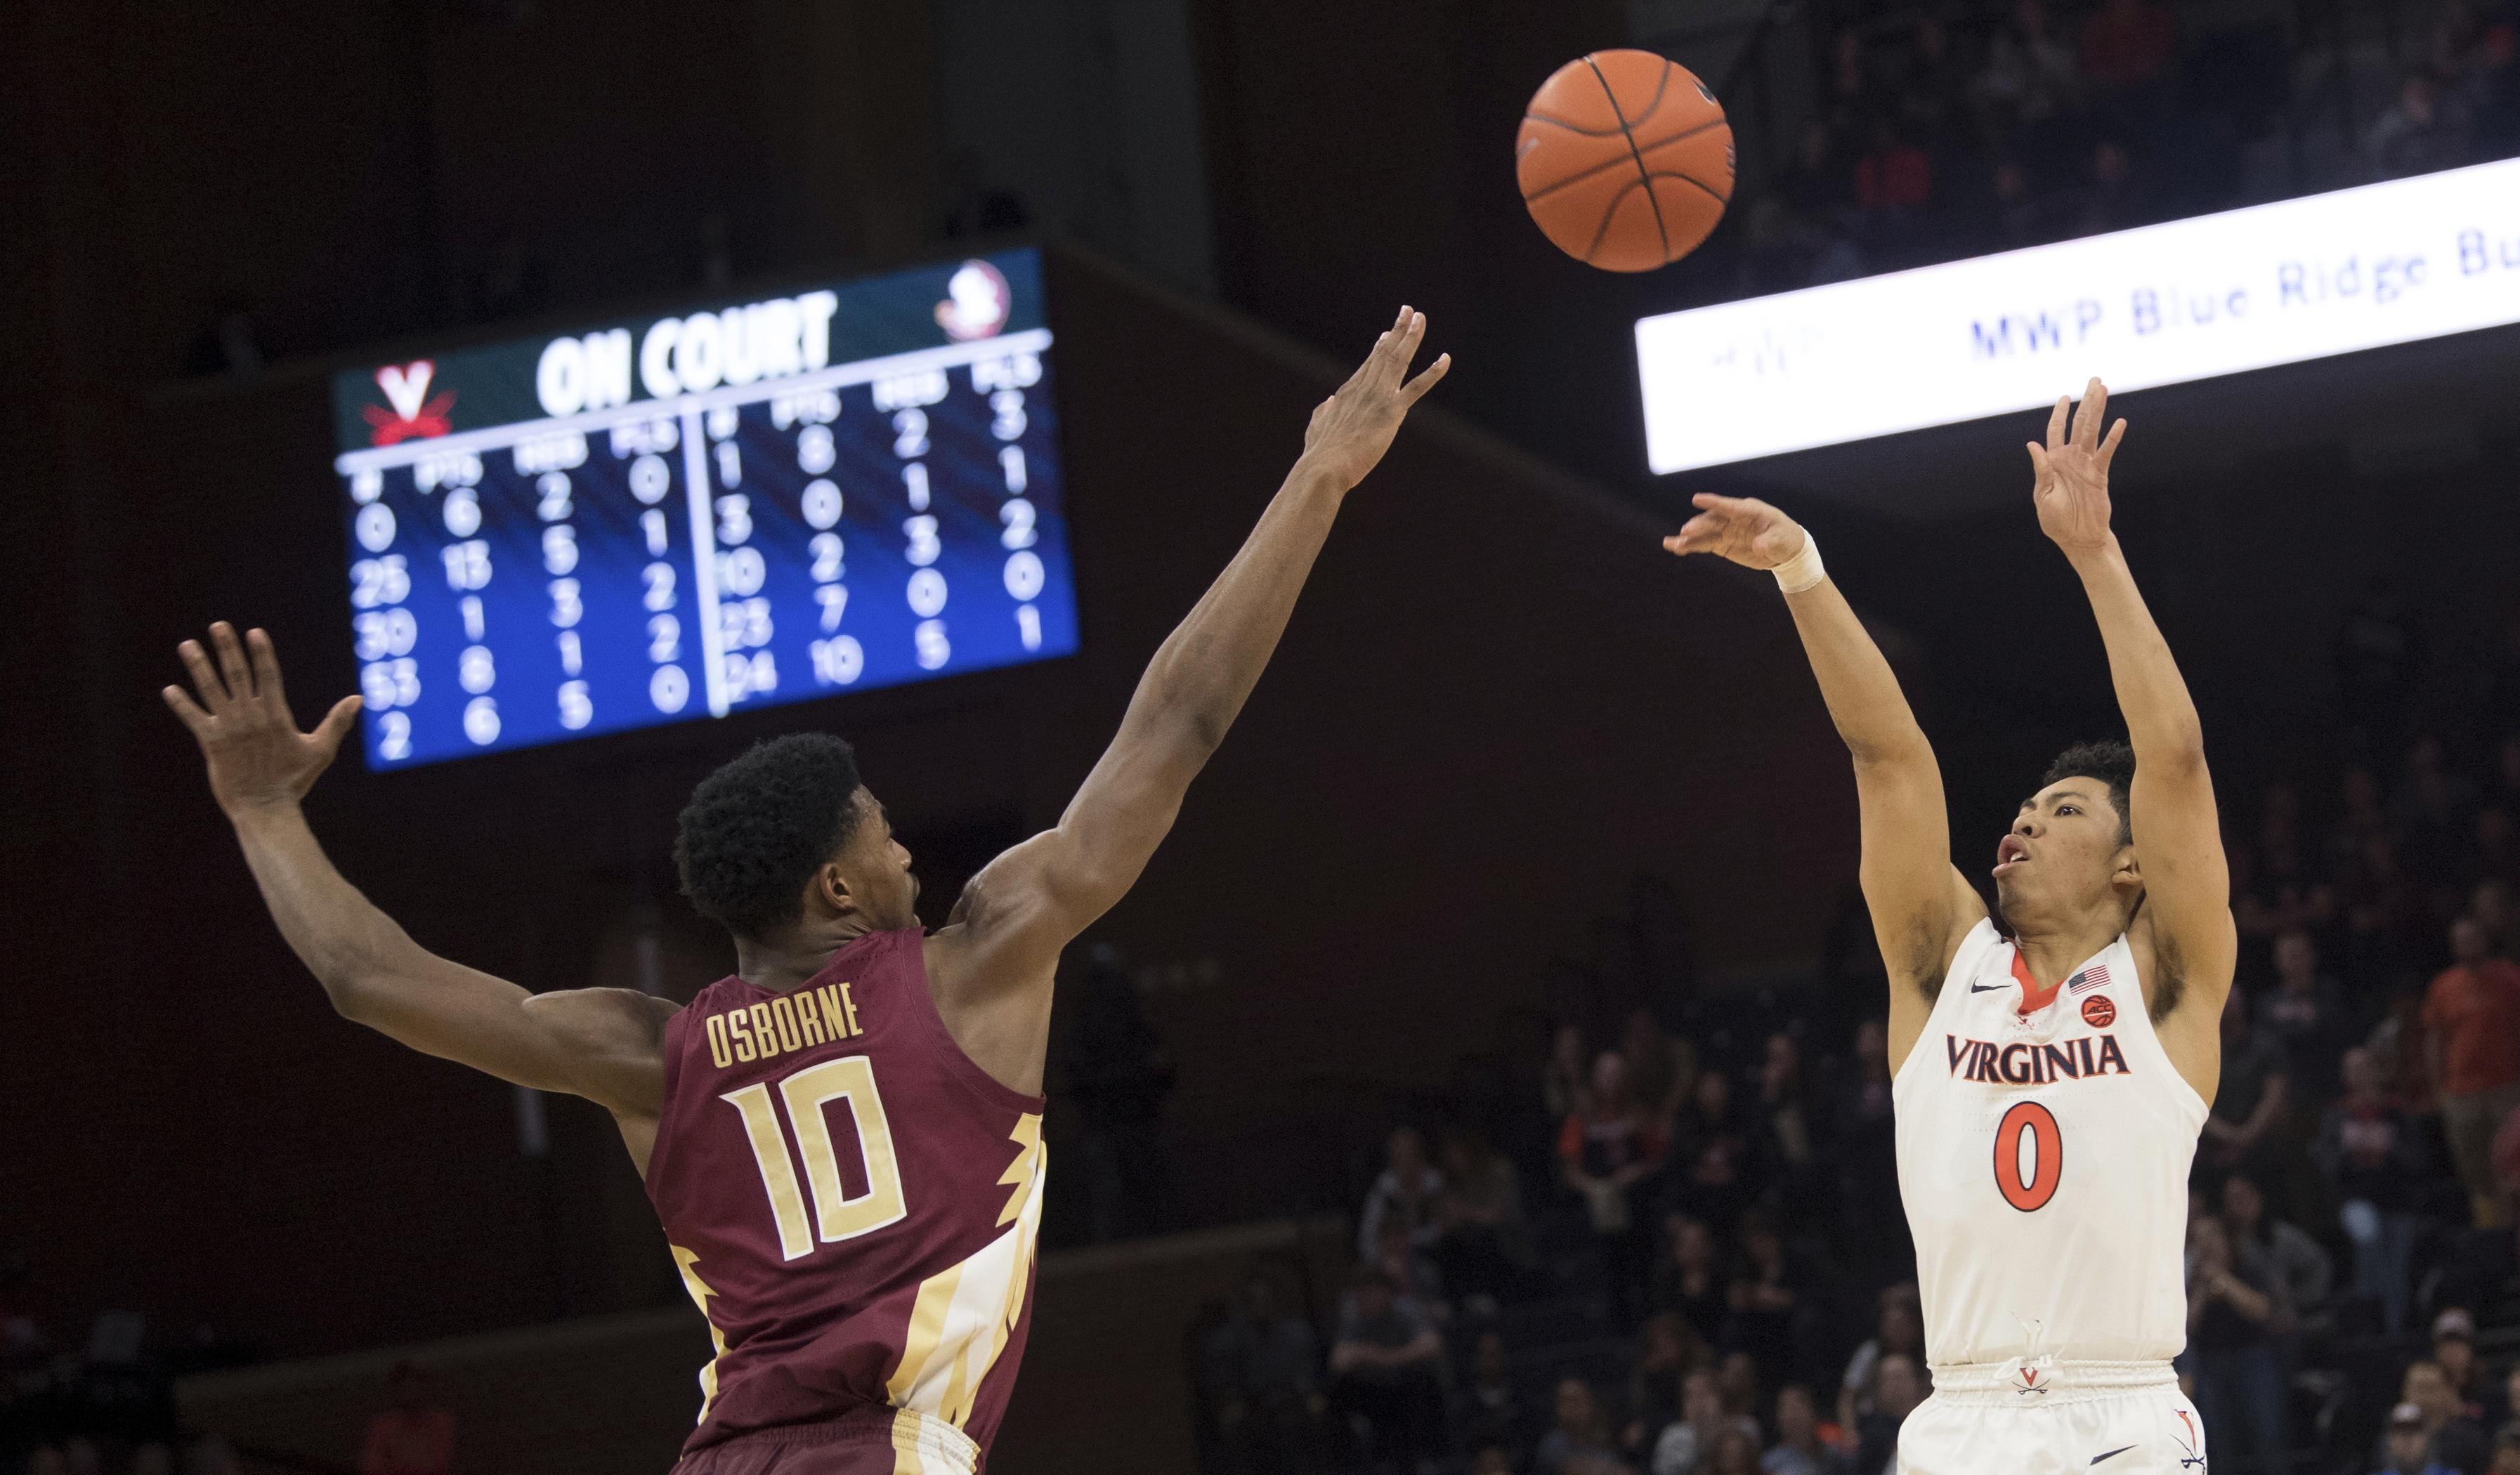 Virginia men's basketball upsets No. 5 Florida State, 61-56